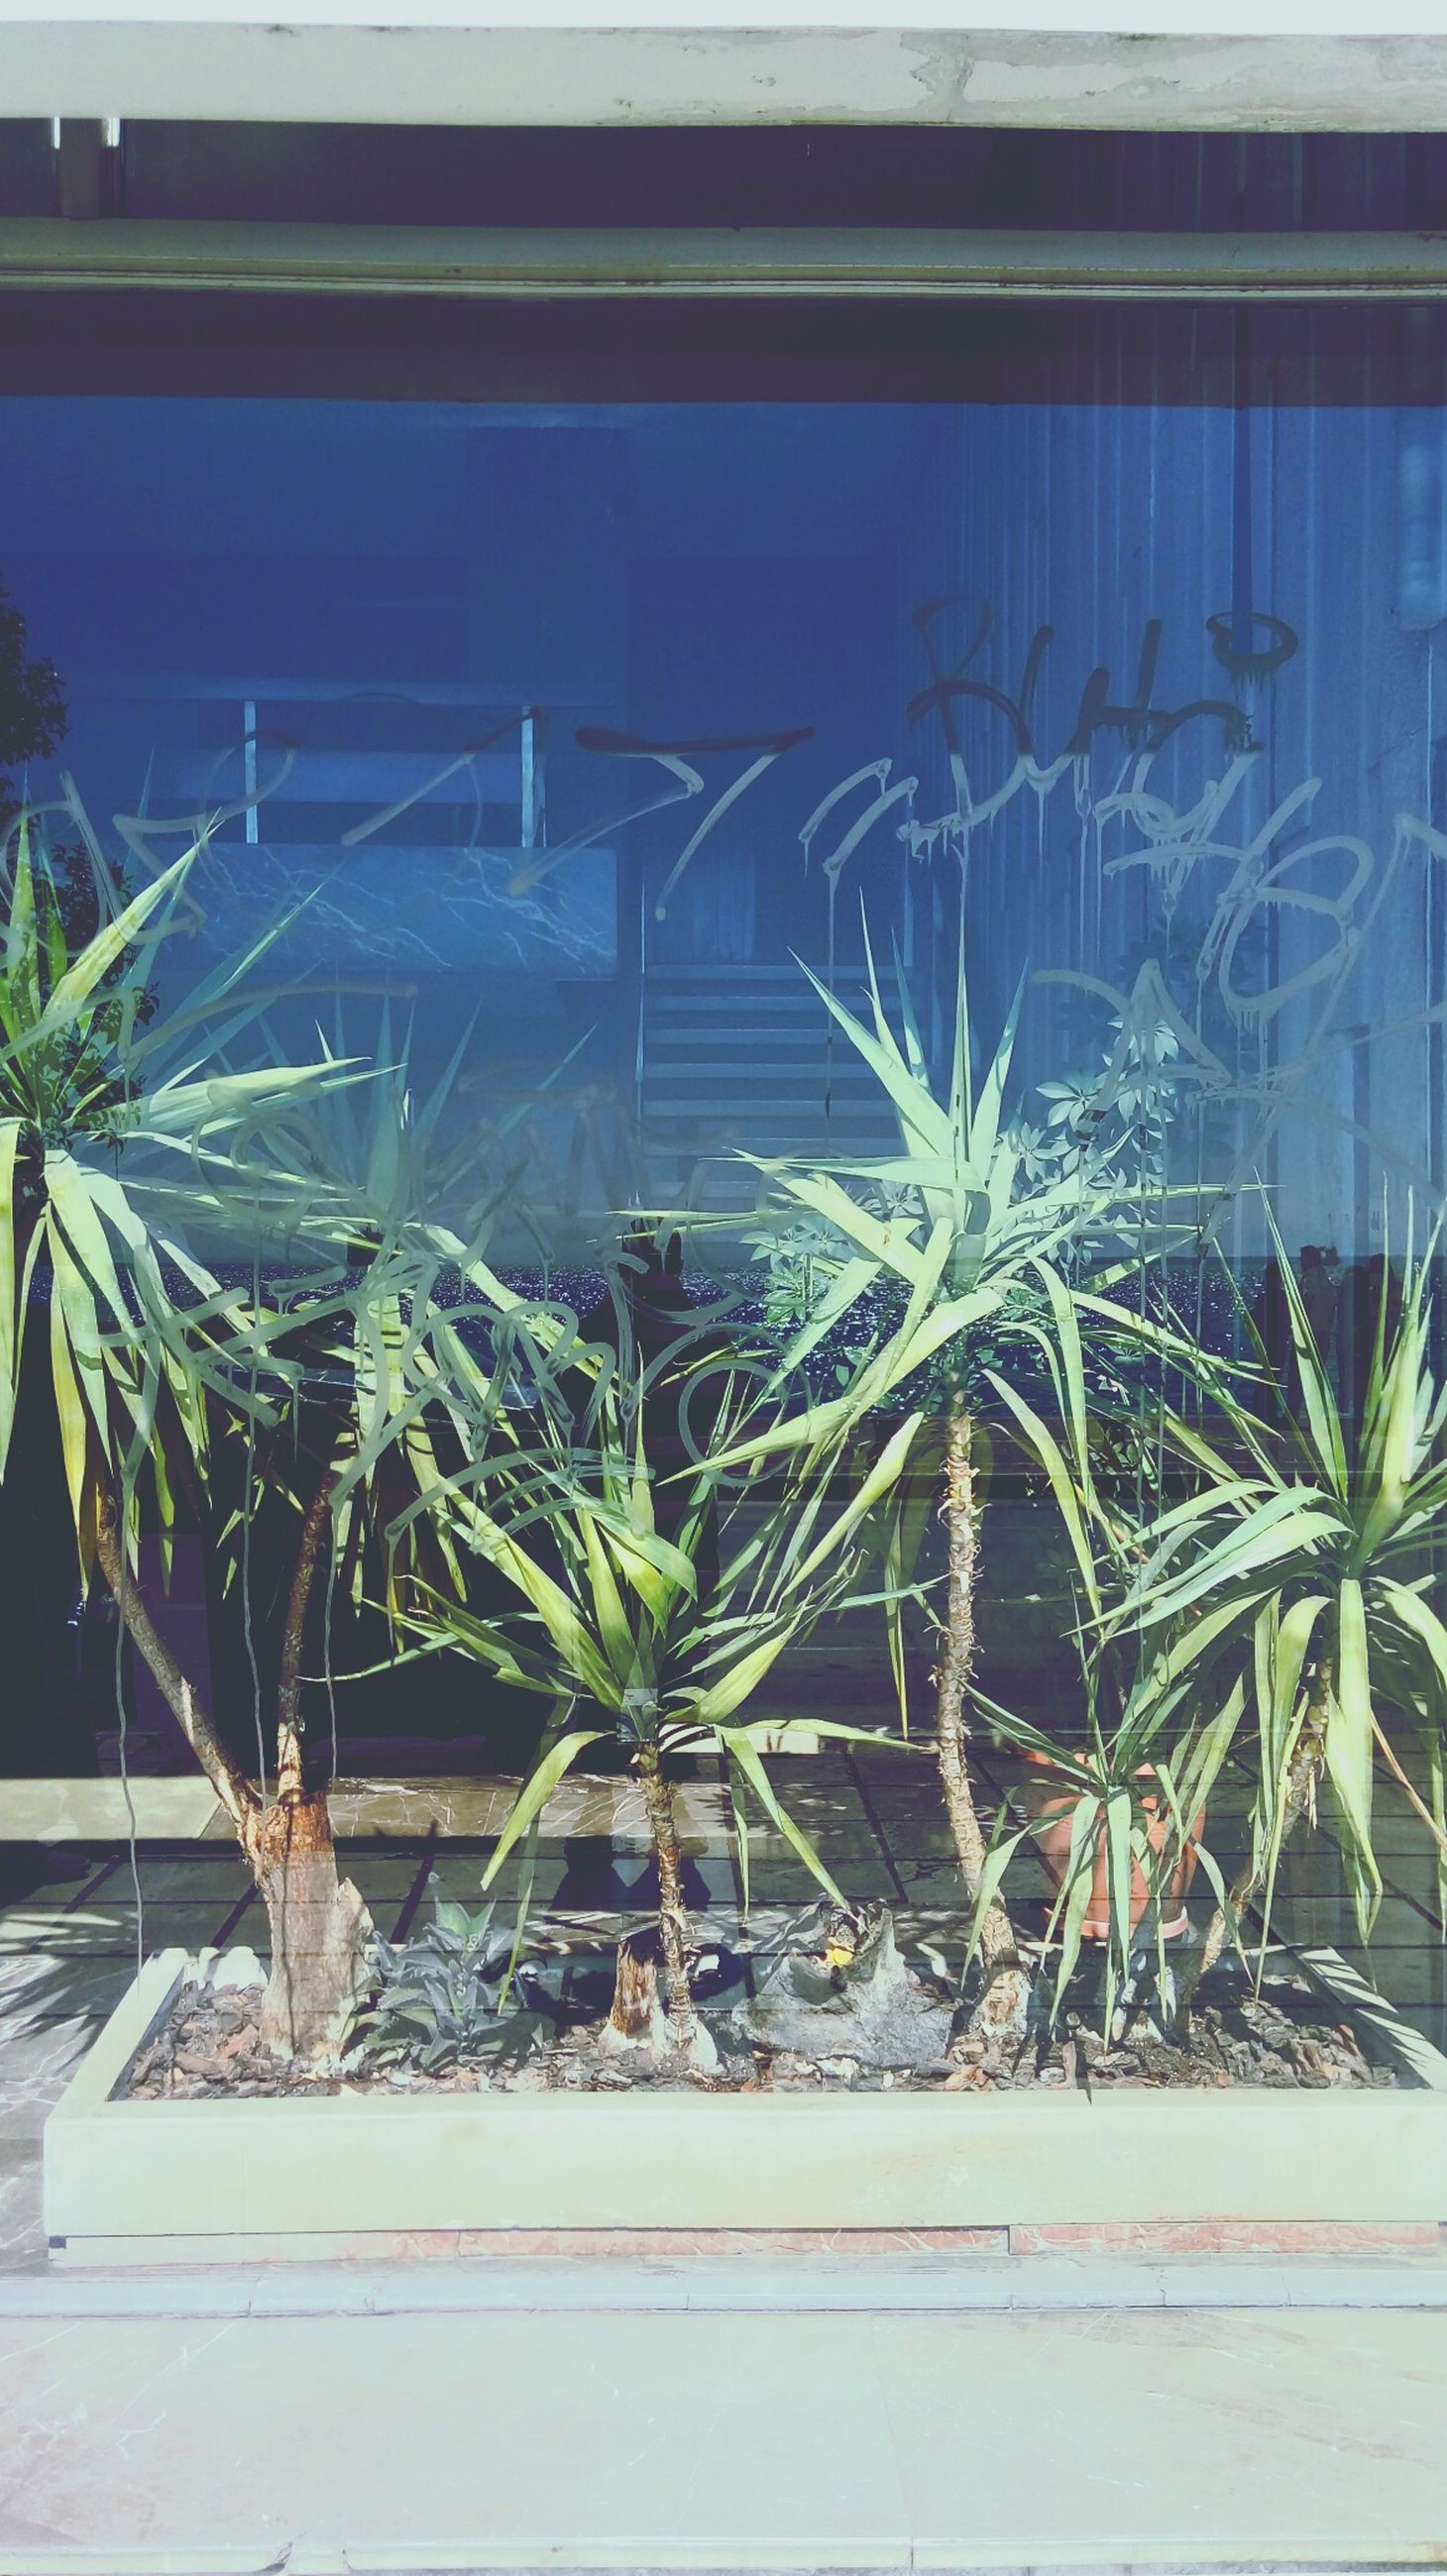 growth, plant, no people, nature, palm tree, tree, built structure, water, outdoors, day